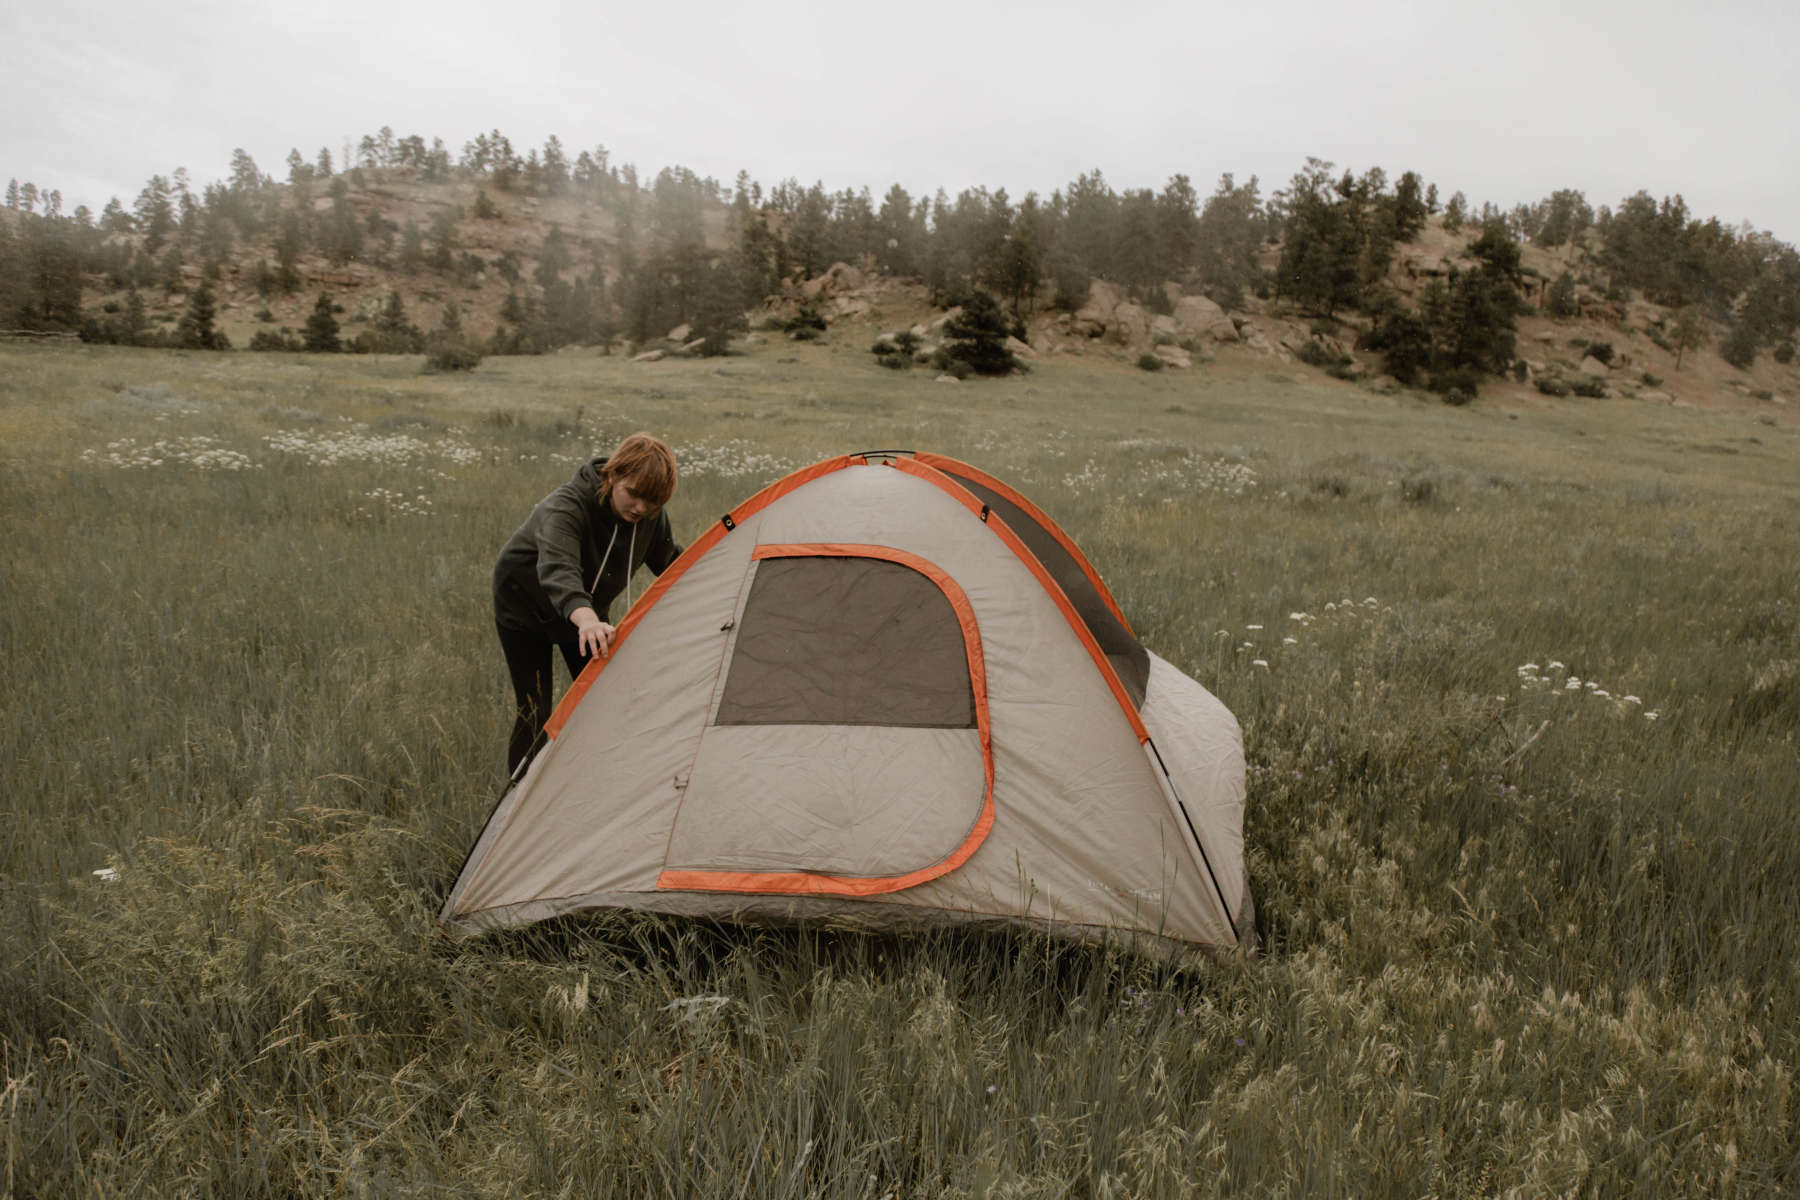 Camping in Montana: The 30 Best Campgrounds - Hipcamp